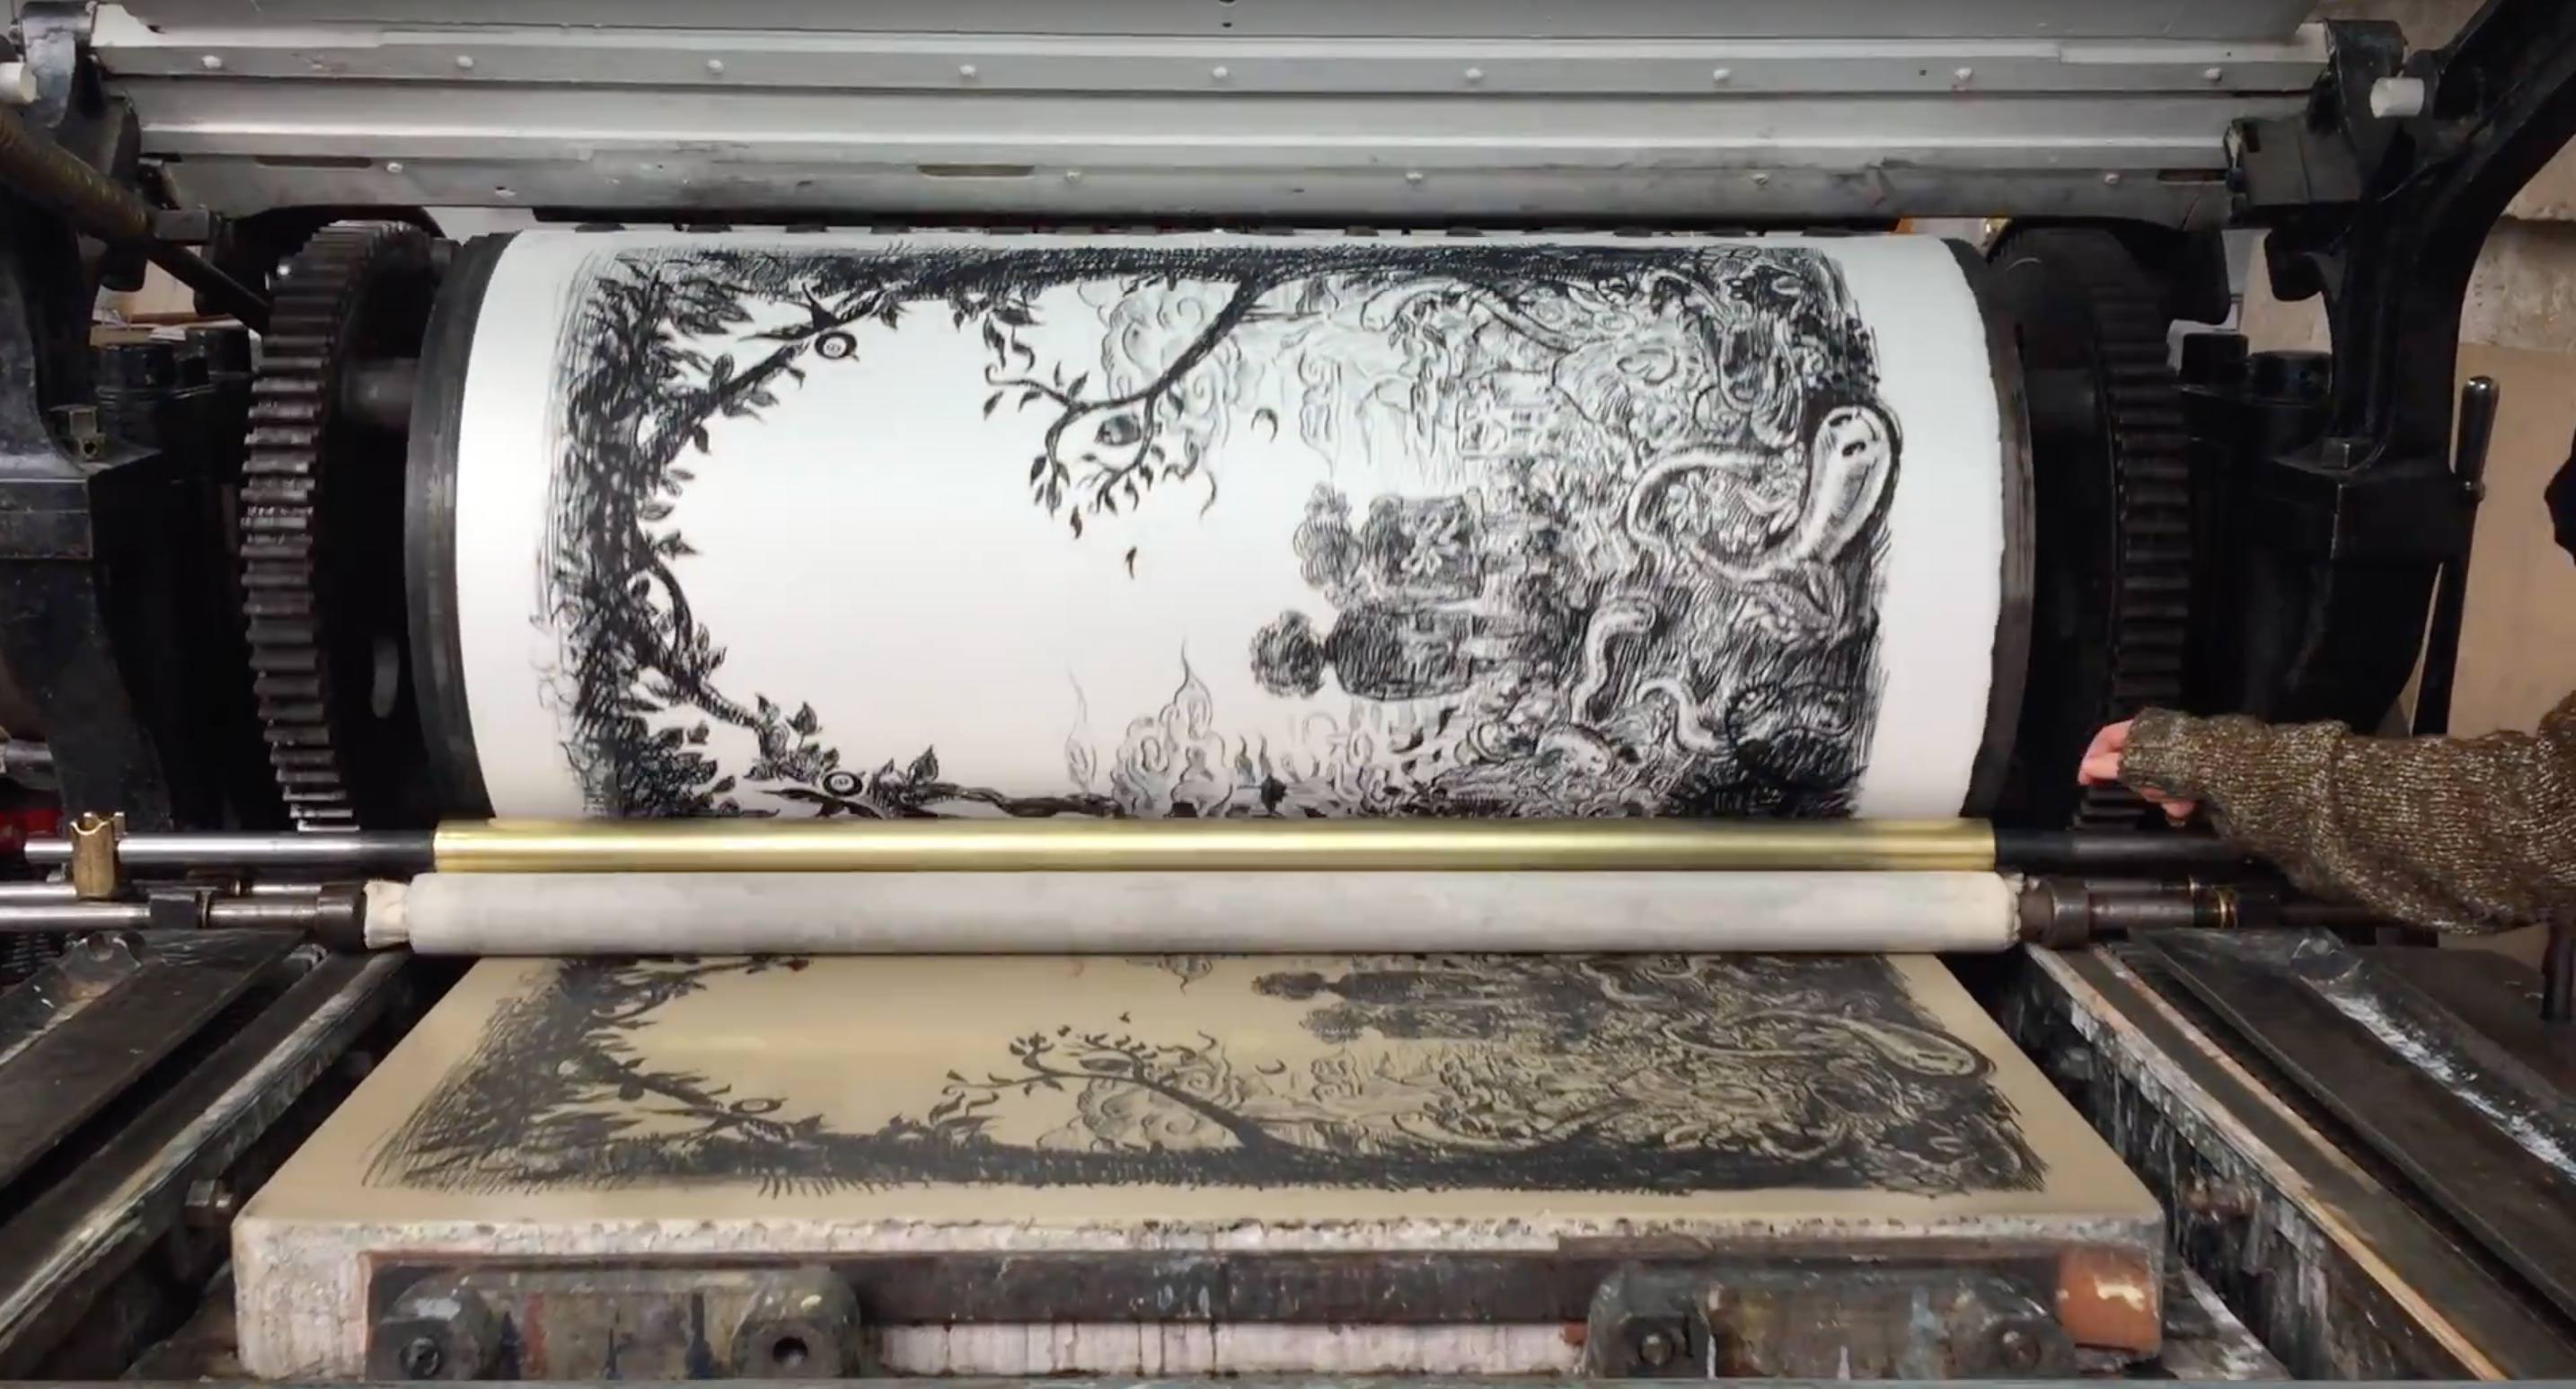 Video - Impression du noir de la lithographie de Winshluss Over The Rainbow